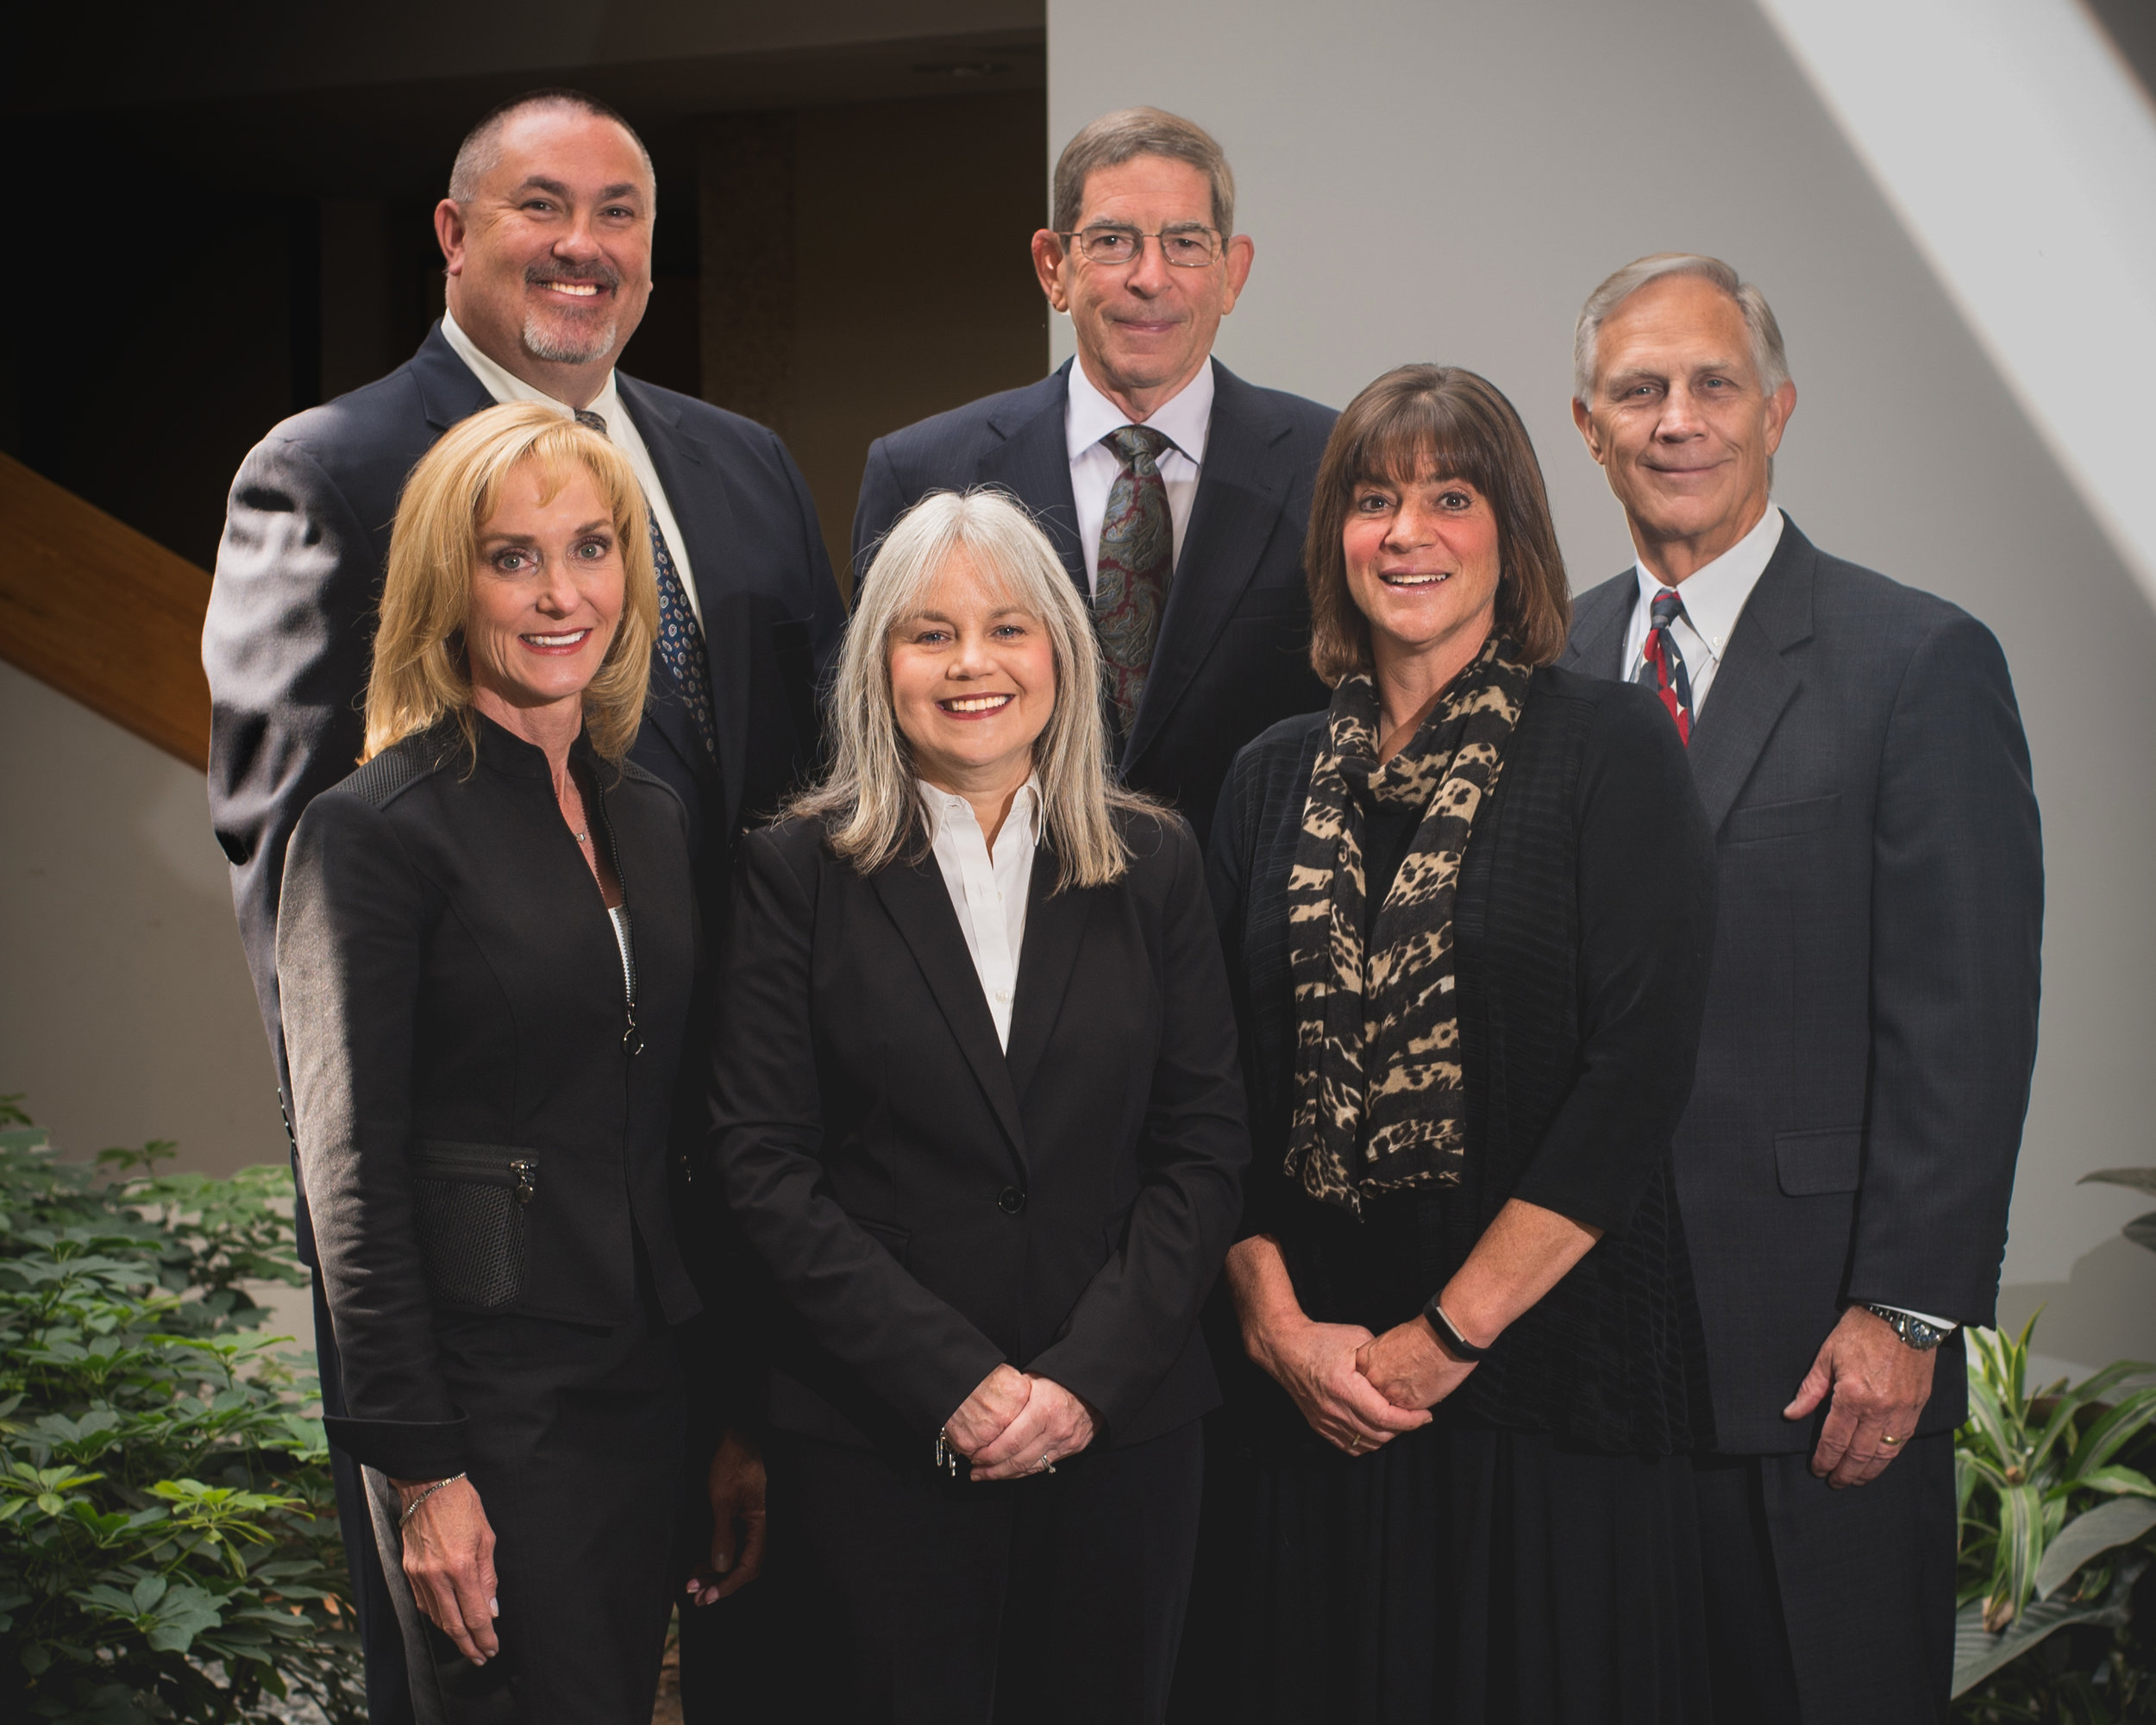 From left to right back row : Chris Ramsey, Jim Huston, Ray Stanley.  Front row : Jill Norris, Liz Smith, Chris Huston